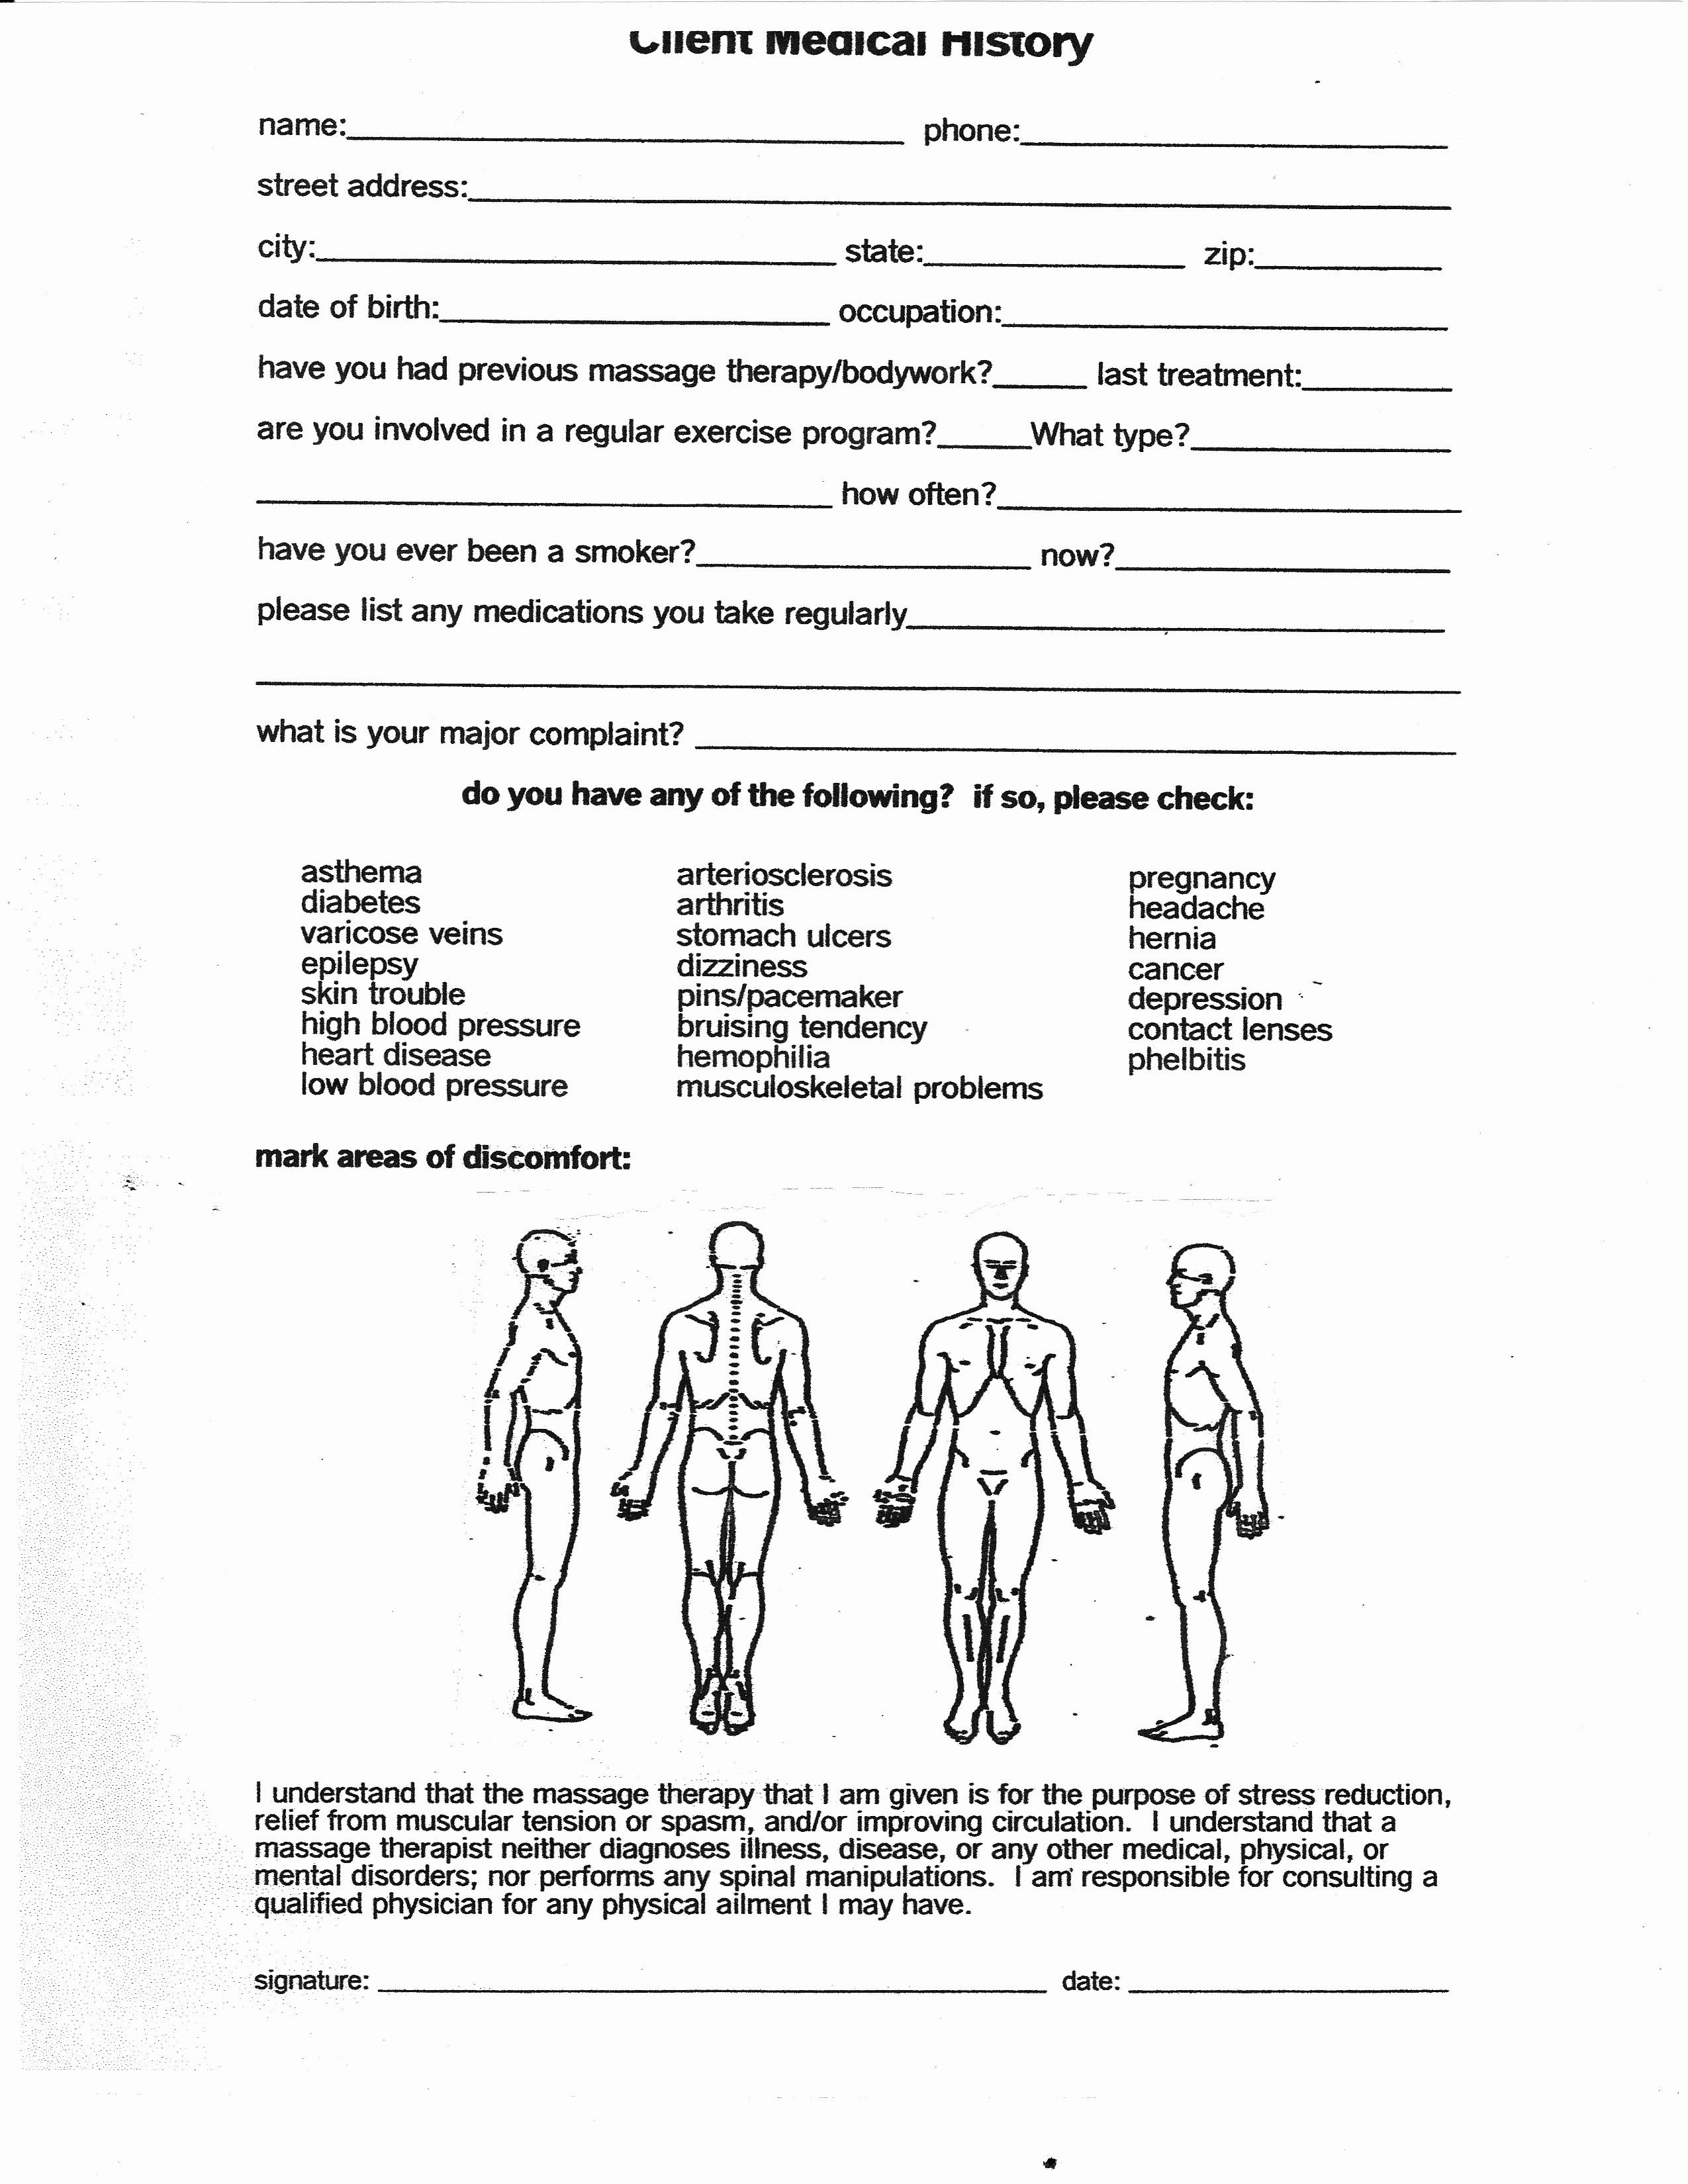 Medical Intake Forms Template New Medical Form Intake Form Massage Intake Forms Physical Therapy Massage Therapy